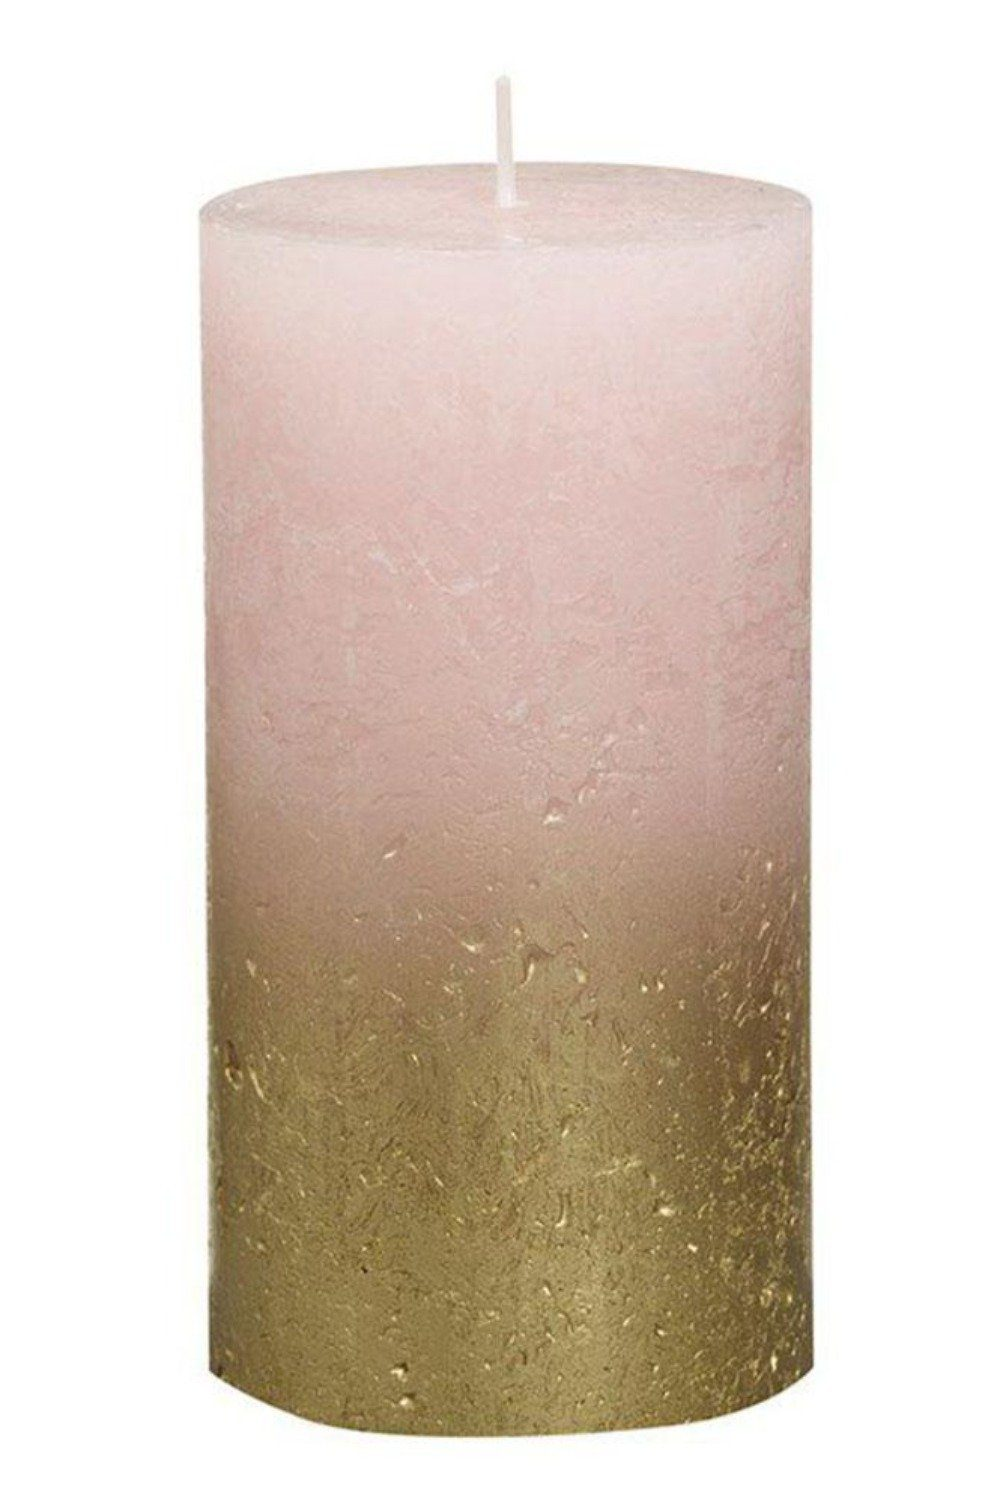 Rustic Pillar Candles - Light Pink and Gold Candles & Fragrance Blume Tall